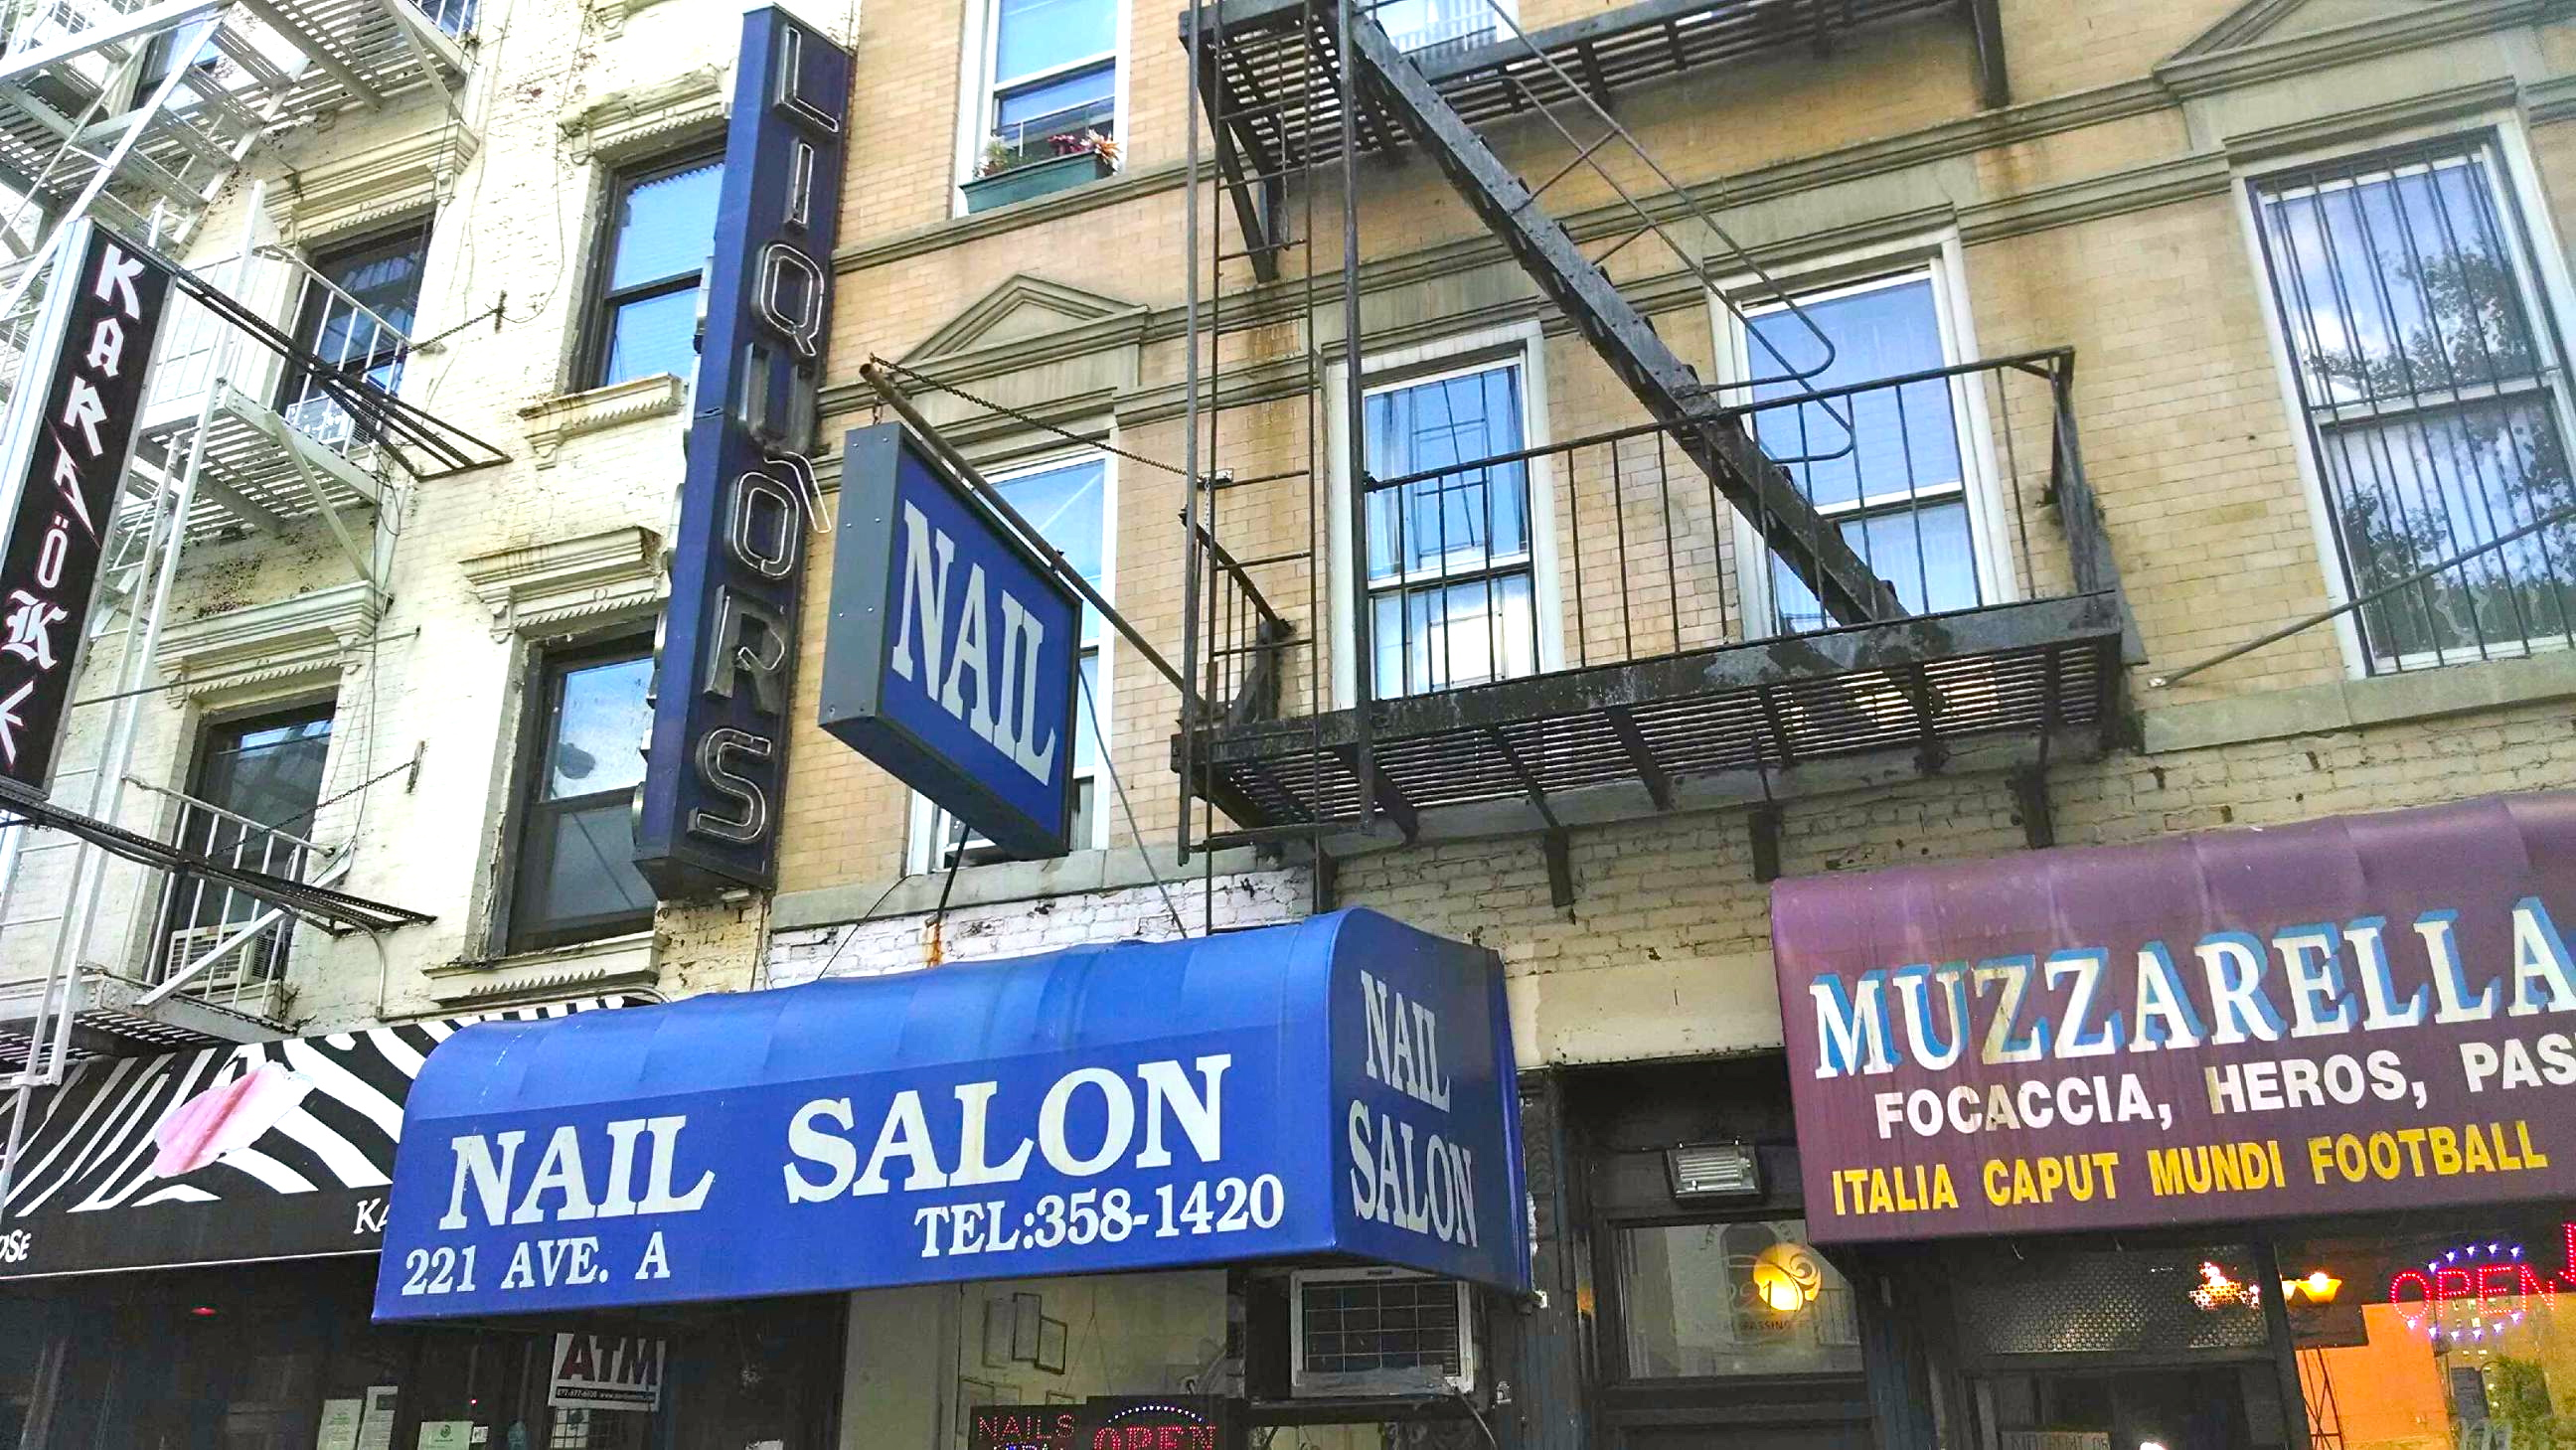 Ghost signs hanging over storefronts in manhattan for 14th avenue salon